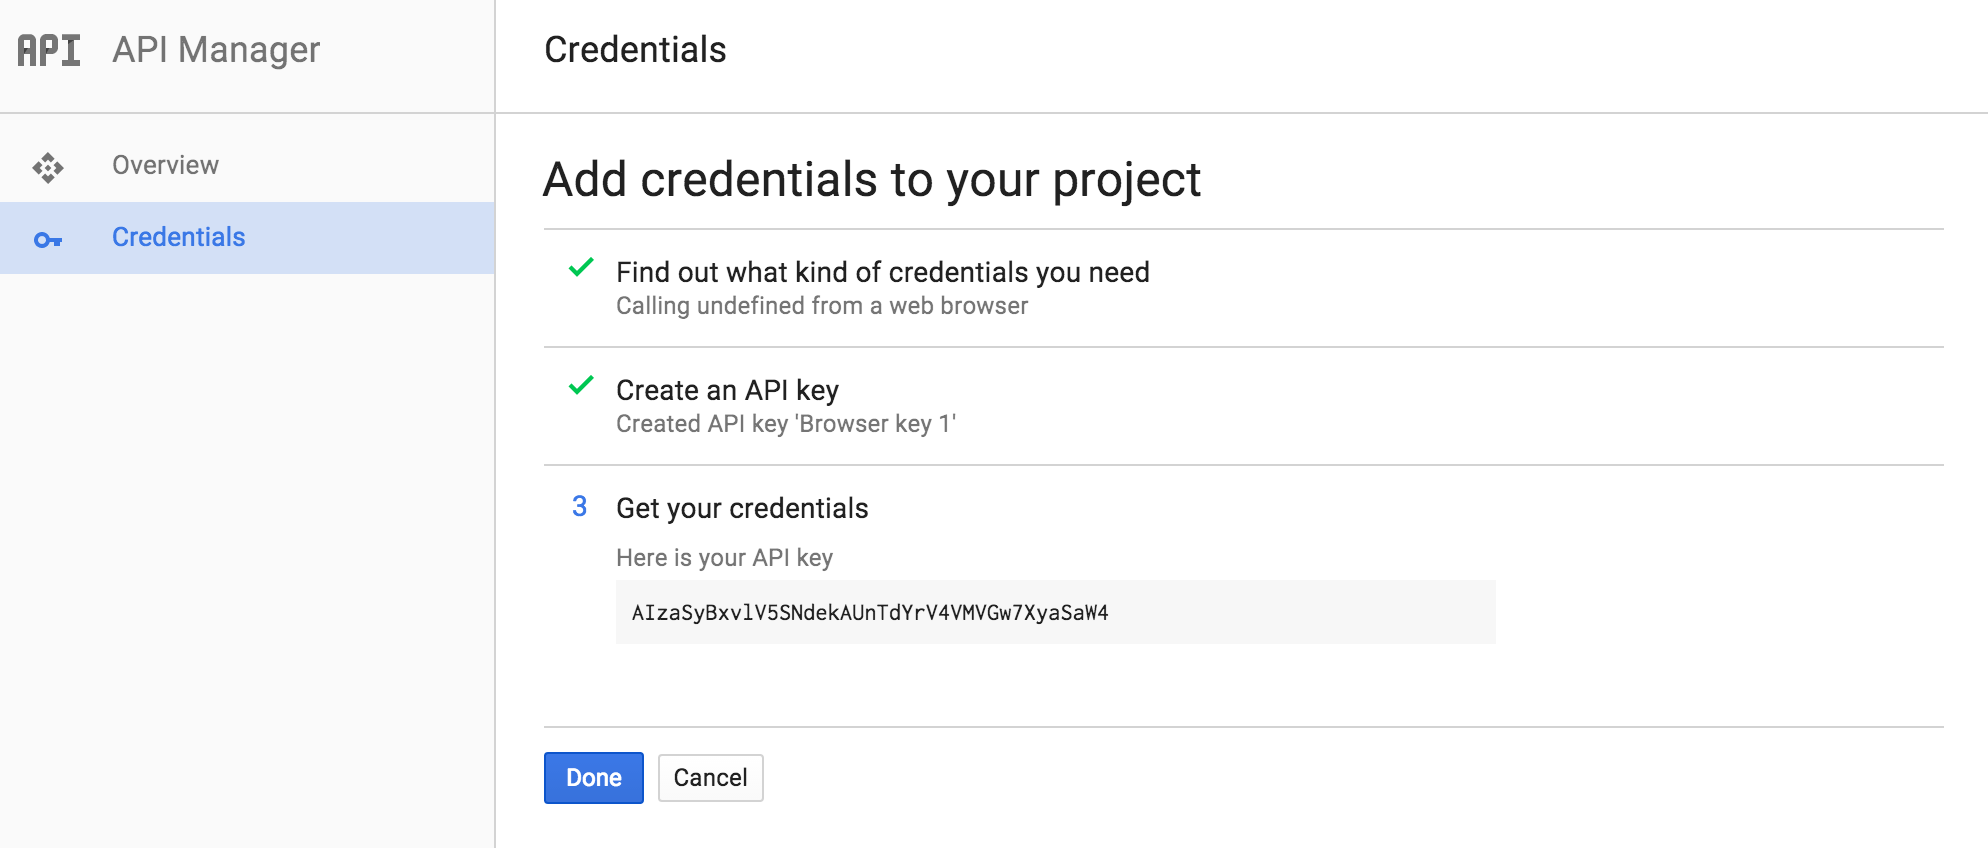 Now you will get your API key, copy it